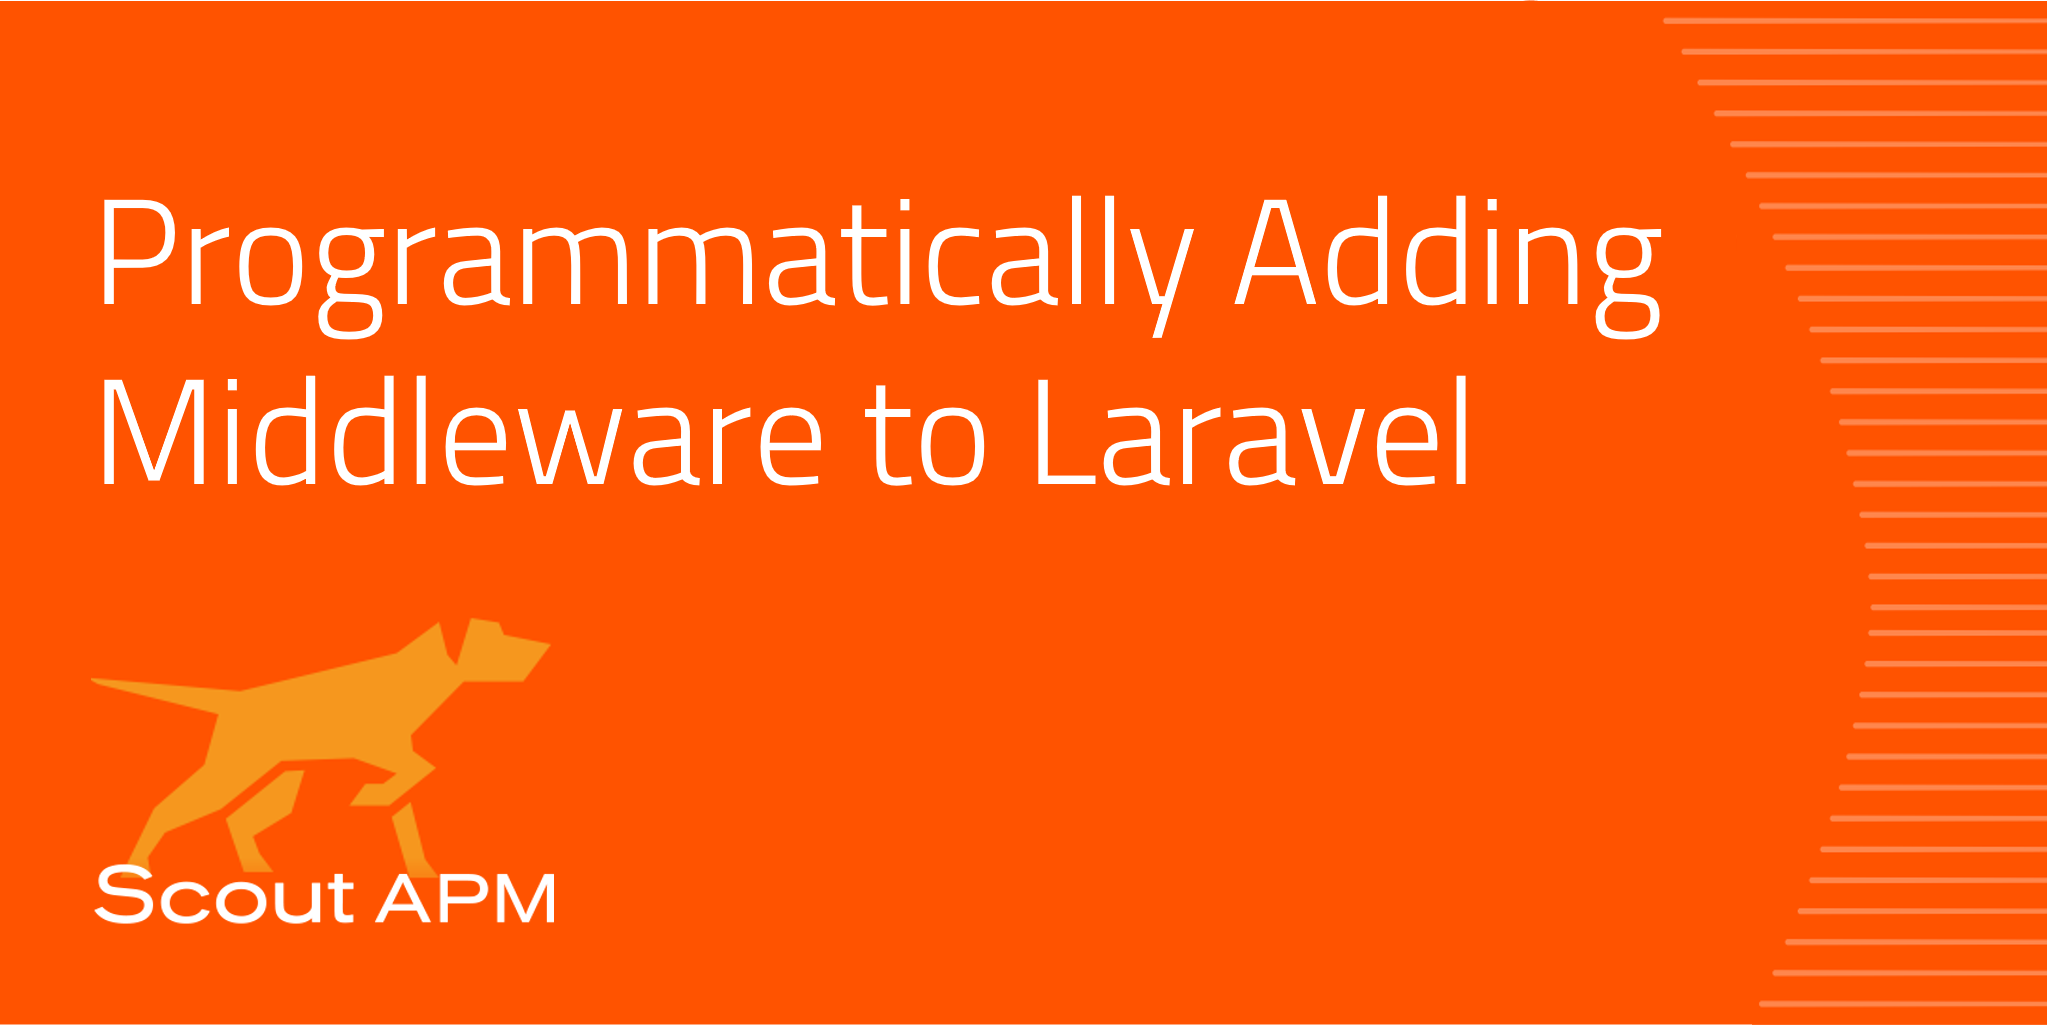 laravel-news_middleware_4400x2000.png